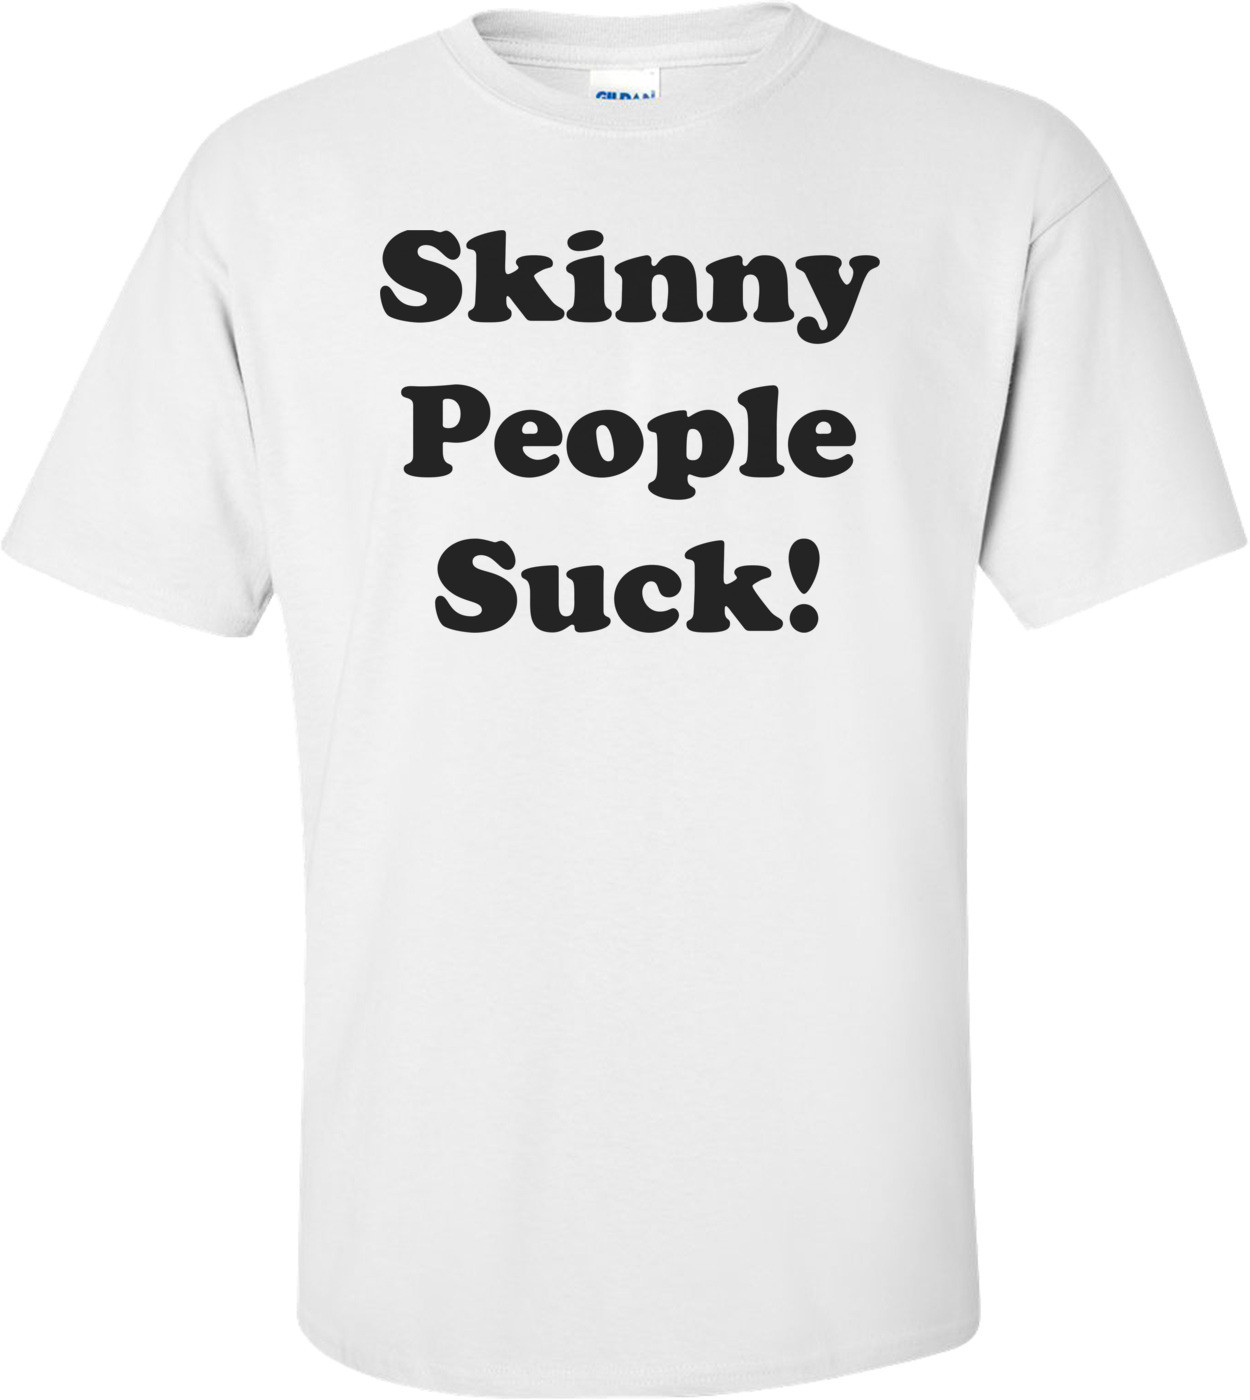 Skinny People Suck! Shirt